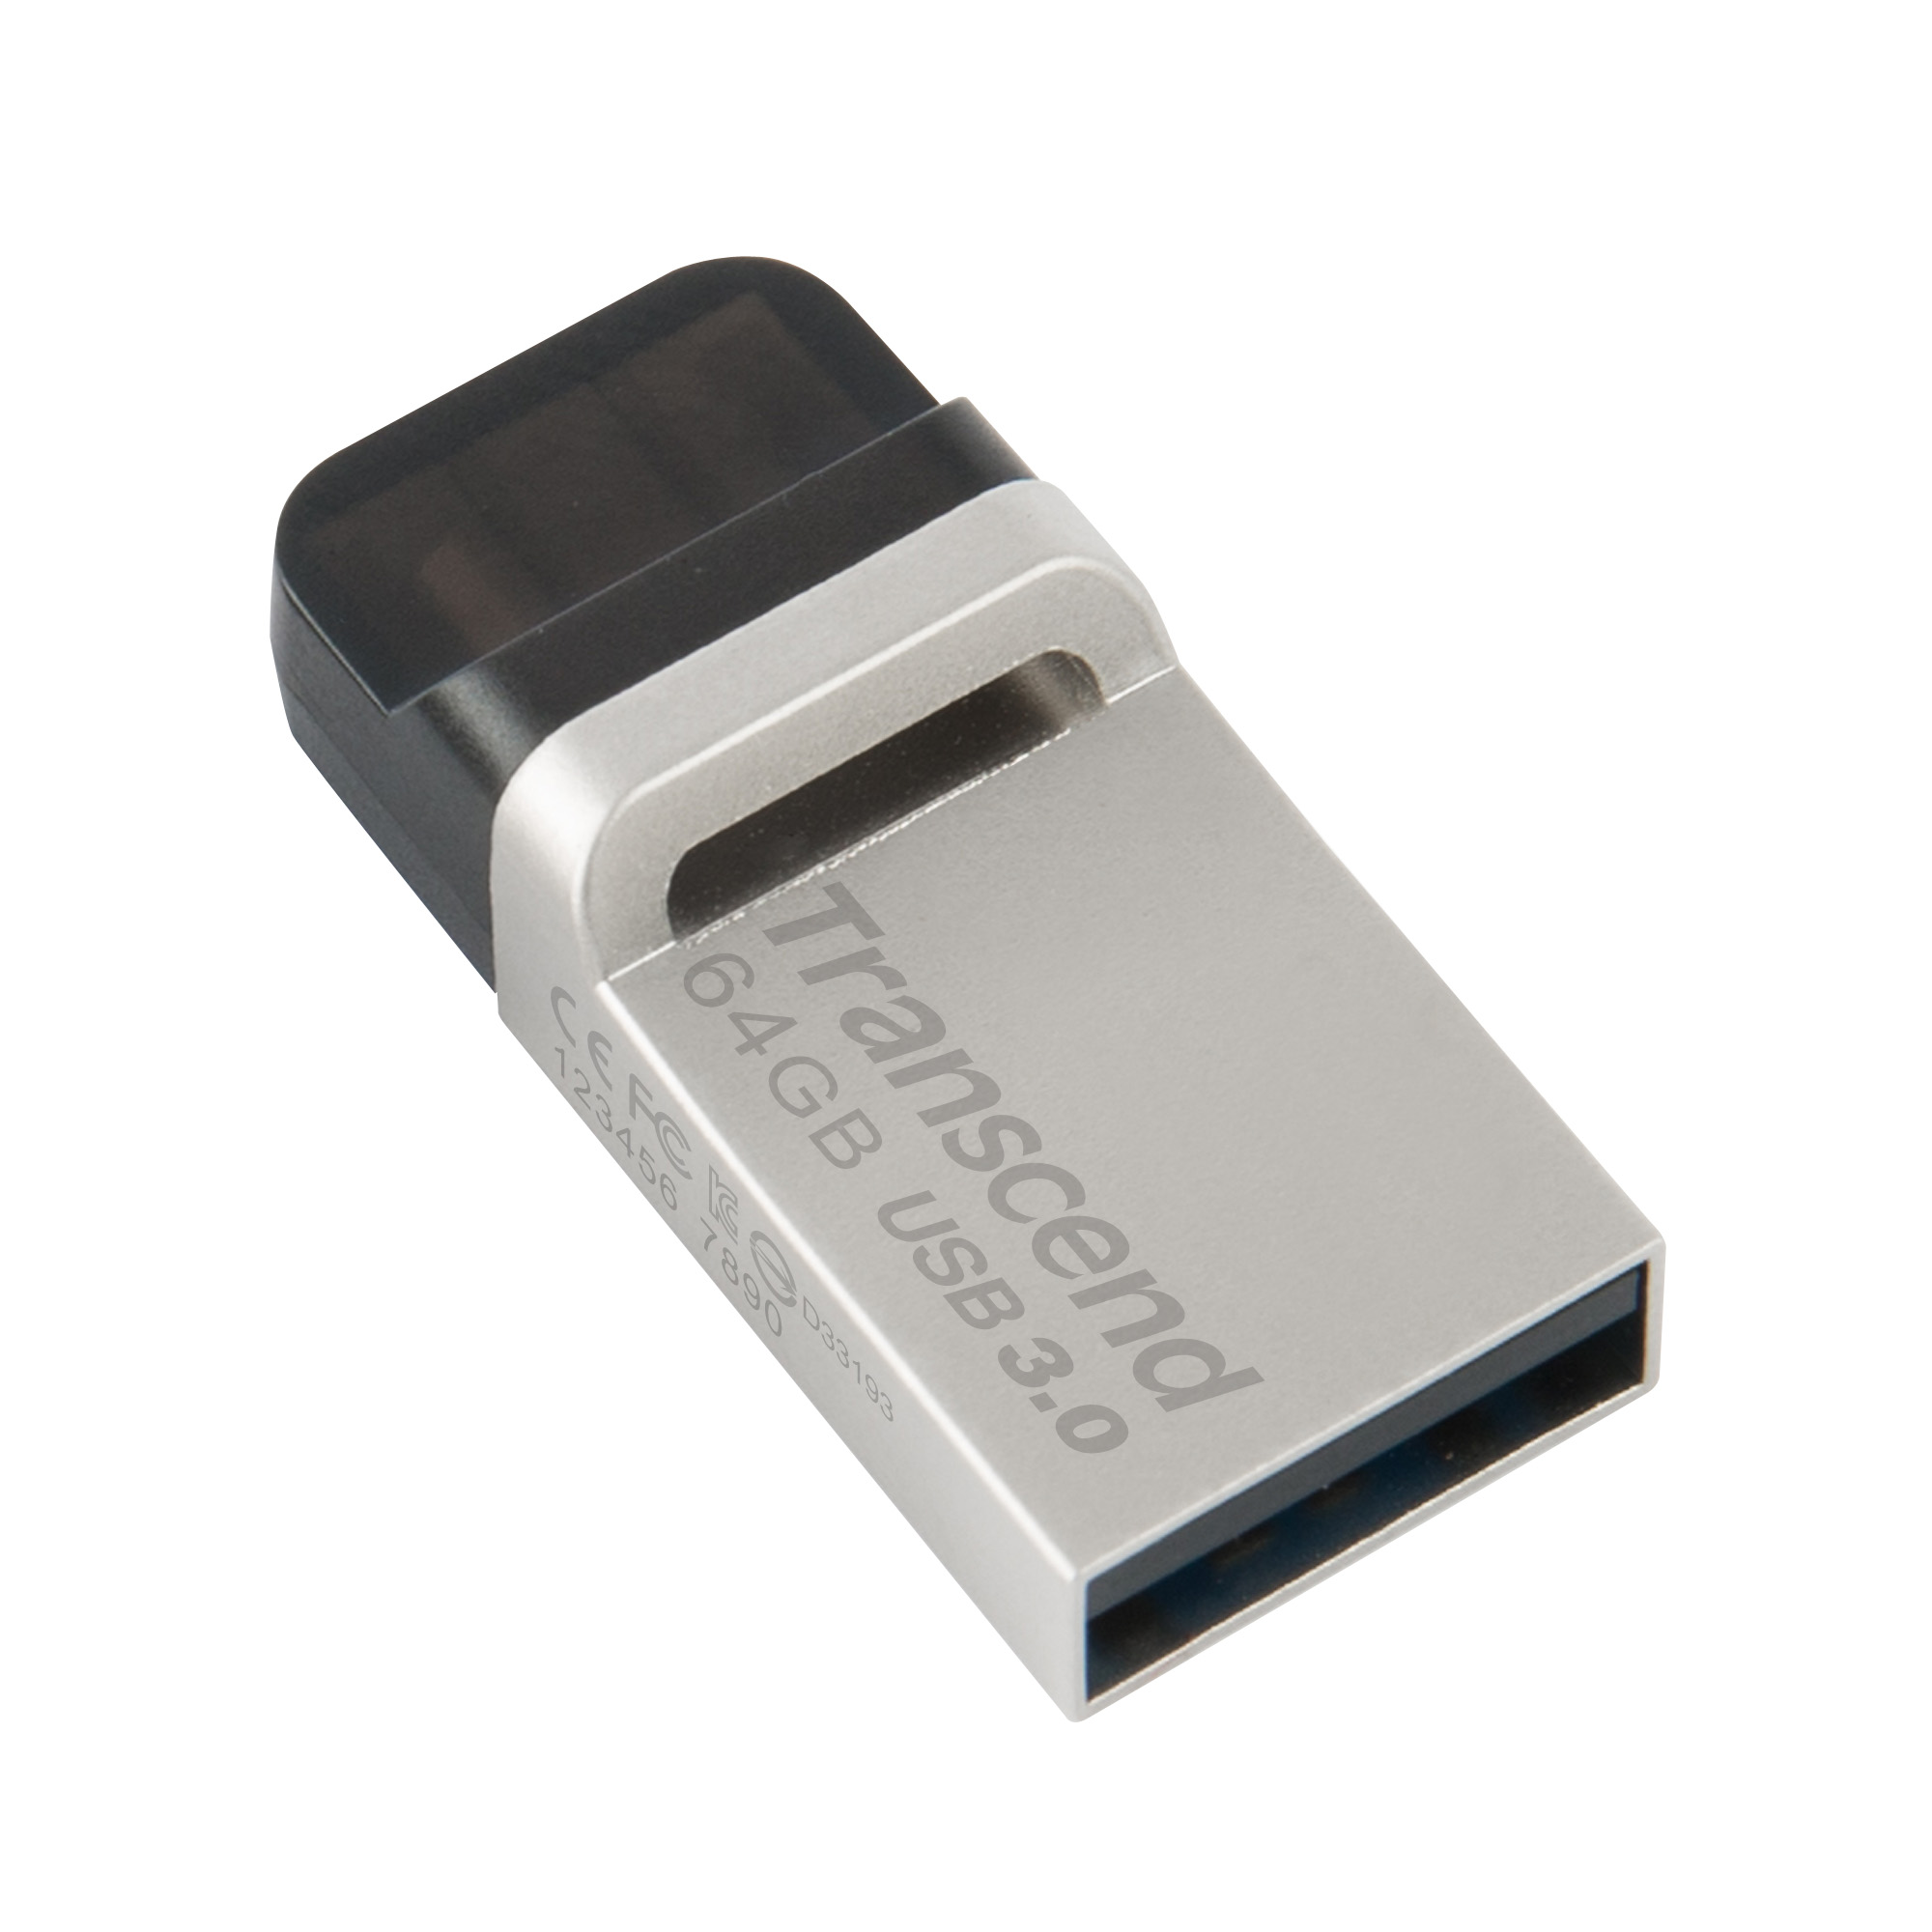 JetFlash 880 OTG Flash Drive